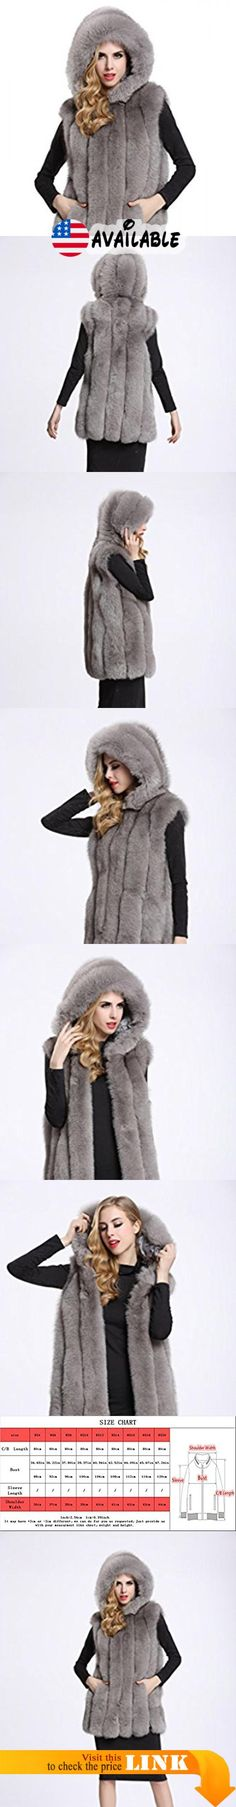 "B01ISNSNV8 : TOPFUR Women's Grey Real Fox Fur Vest Long Fur Gilets Waistcoat with Big Hood XL. Made from high quality and soft Genuine fox fur external which feels cozy on the skin and comfortable to wear.. Available Sizes and colors of stylish fur waistcoat excellently fit well with your demand. Length(S-6XL):31.35""(80cm). Elegant hat design with hook superb pattern look stereoscopic and gorgeous as the model when wearing this noble and fashion Pashminas These vests are"